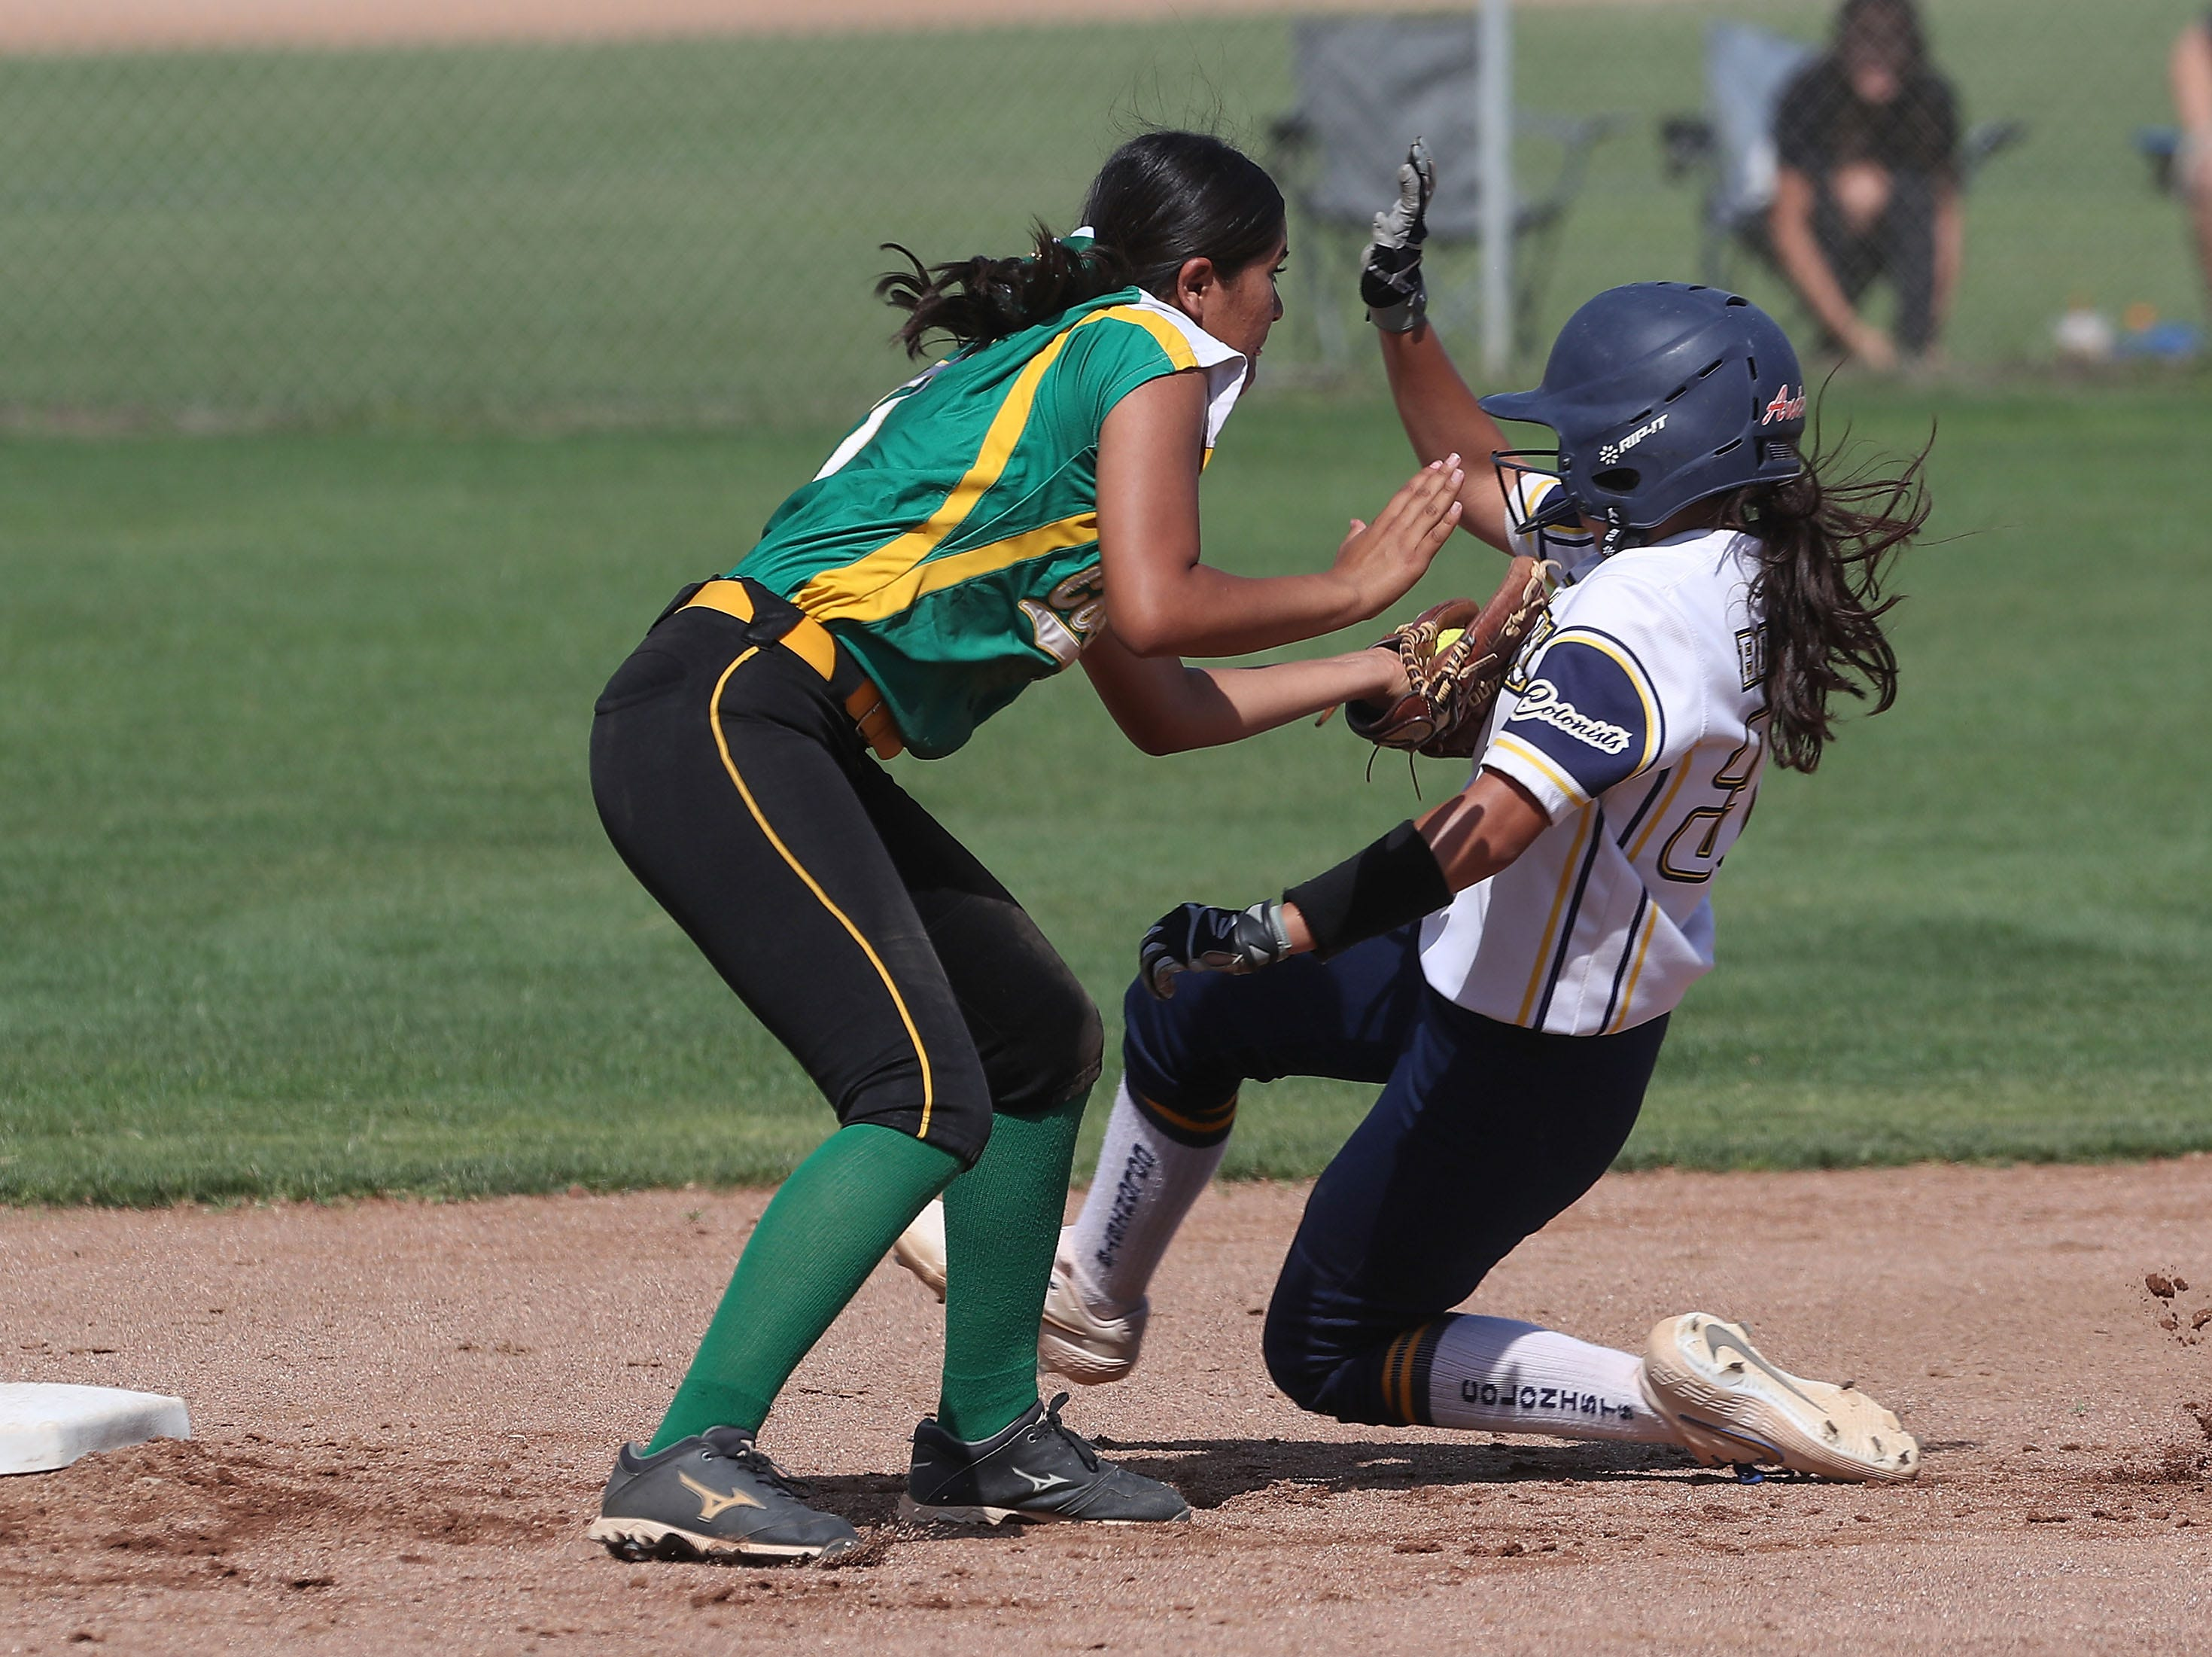 Emily Salinas of Coachella Valley makes an out against Anaheim during the Arabs loss, May 9, 2019.